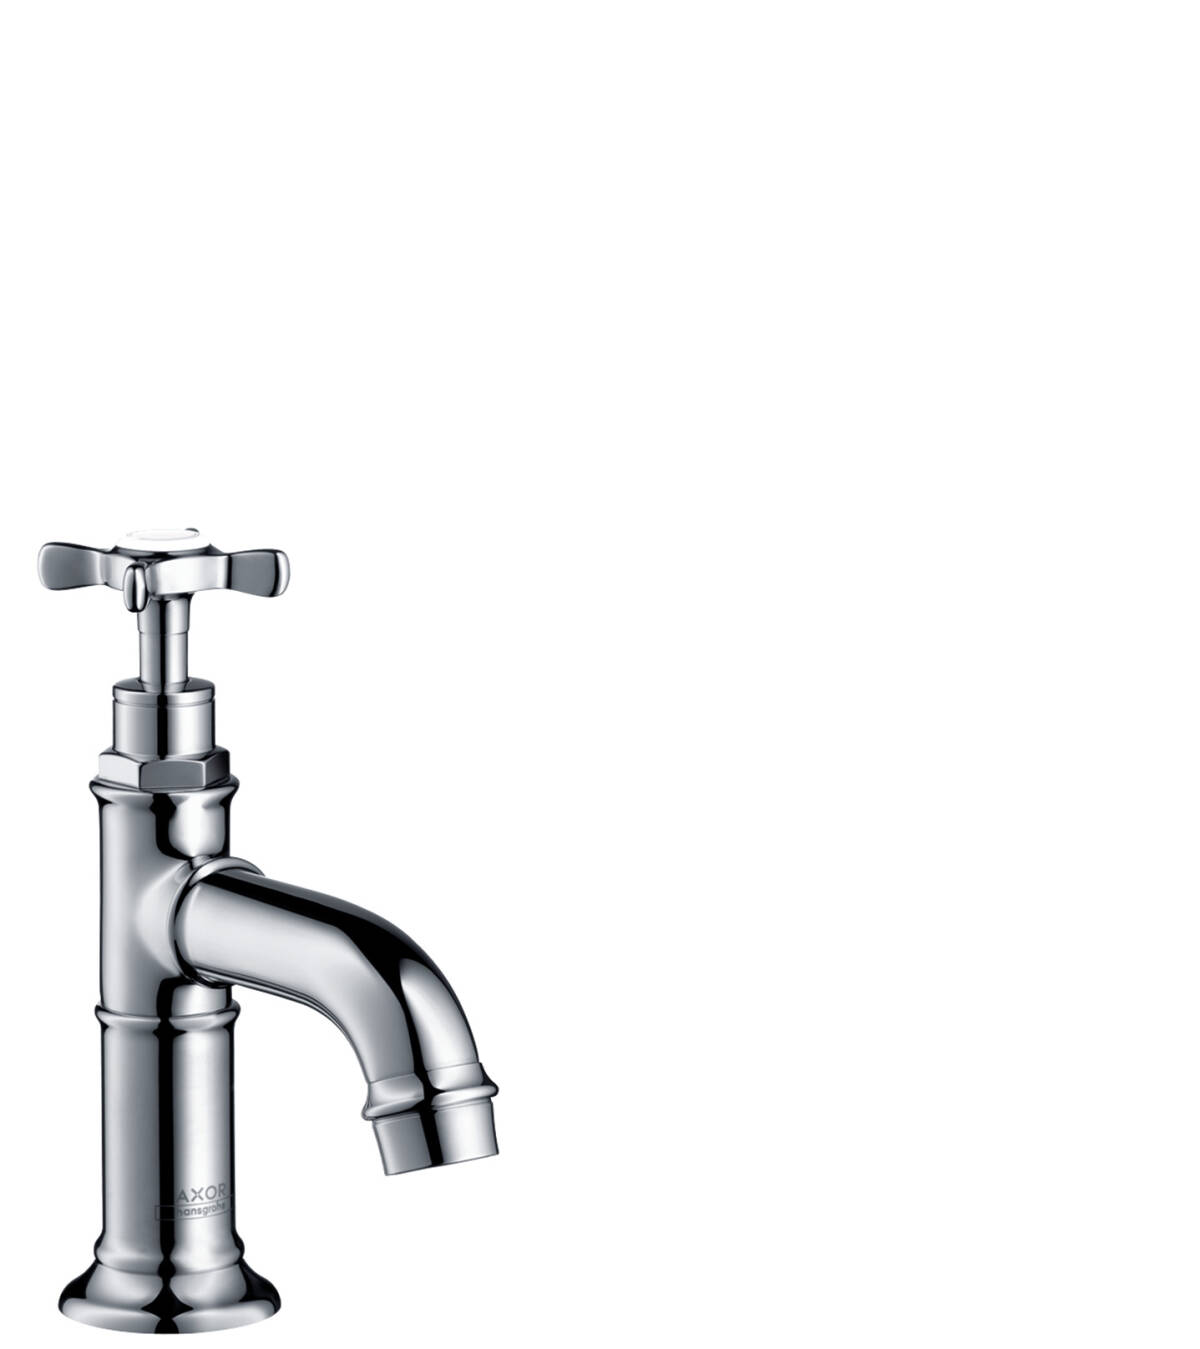 Pillar tap without waste set, Polished Nickel, 16530830